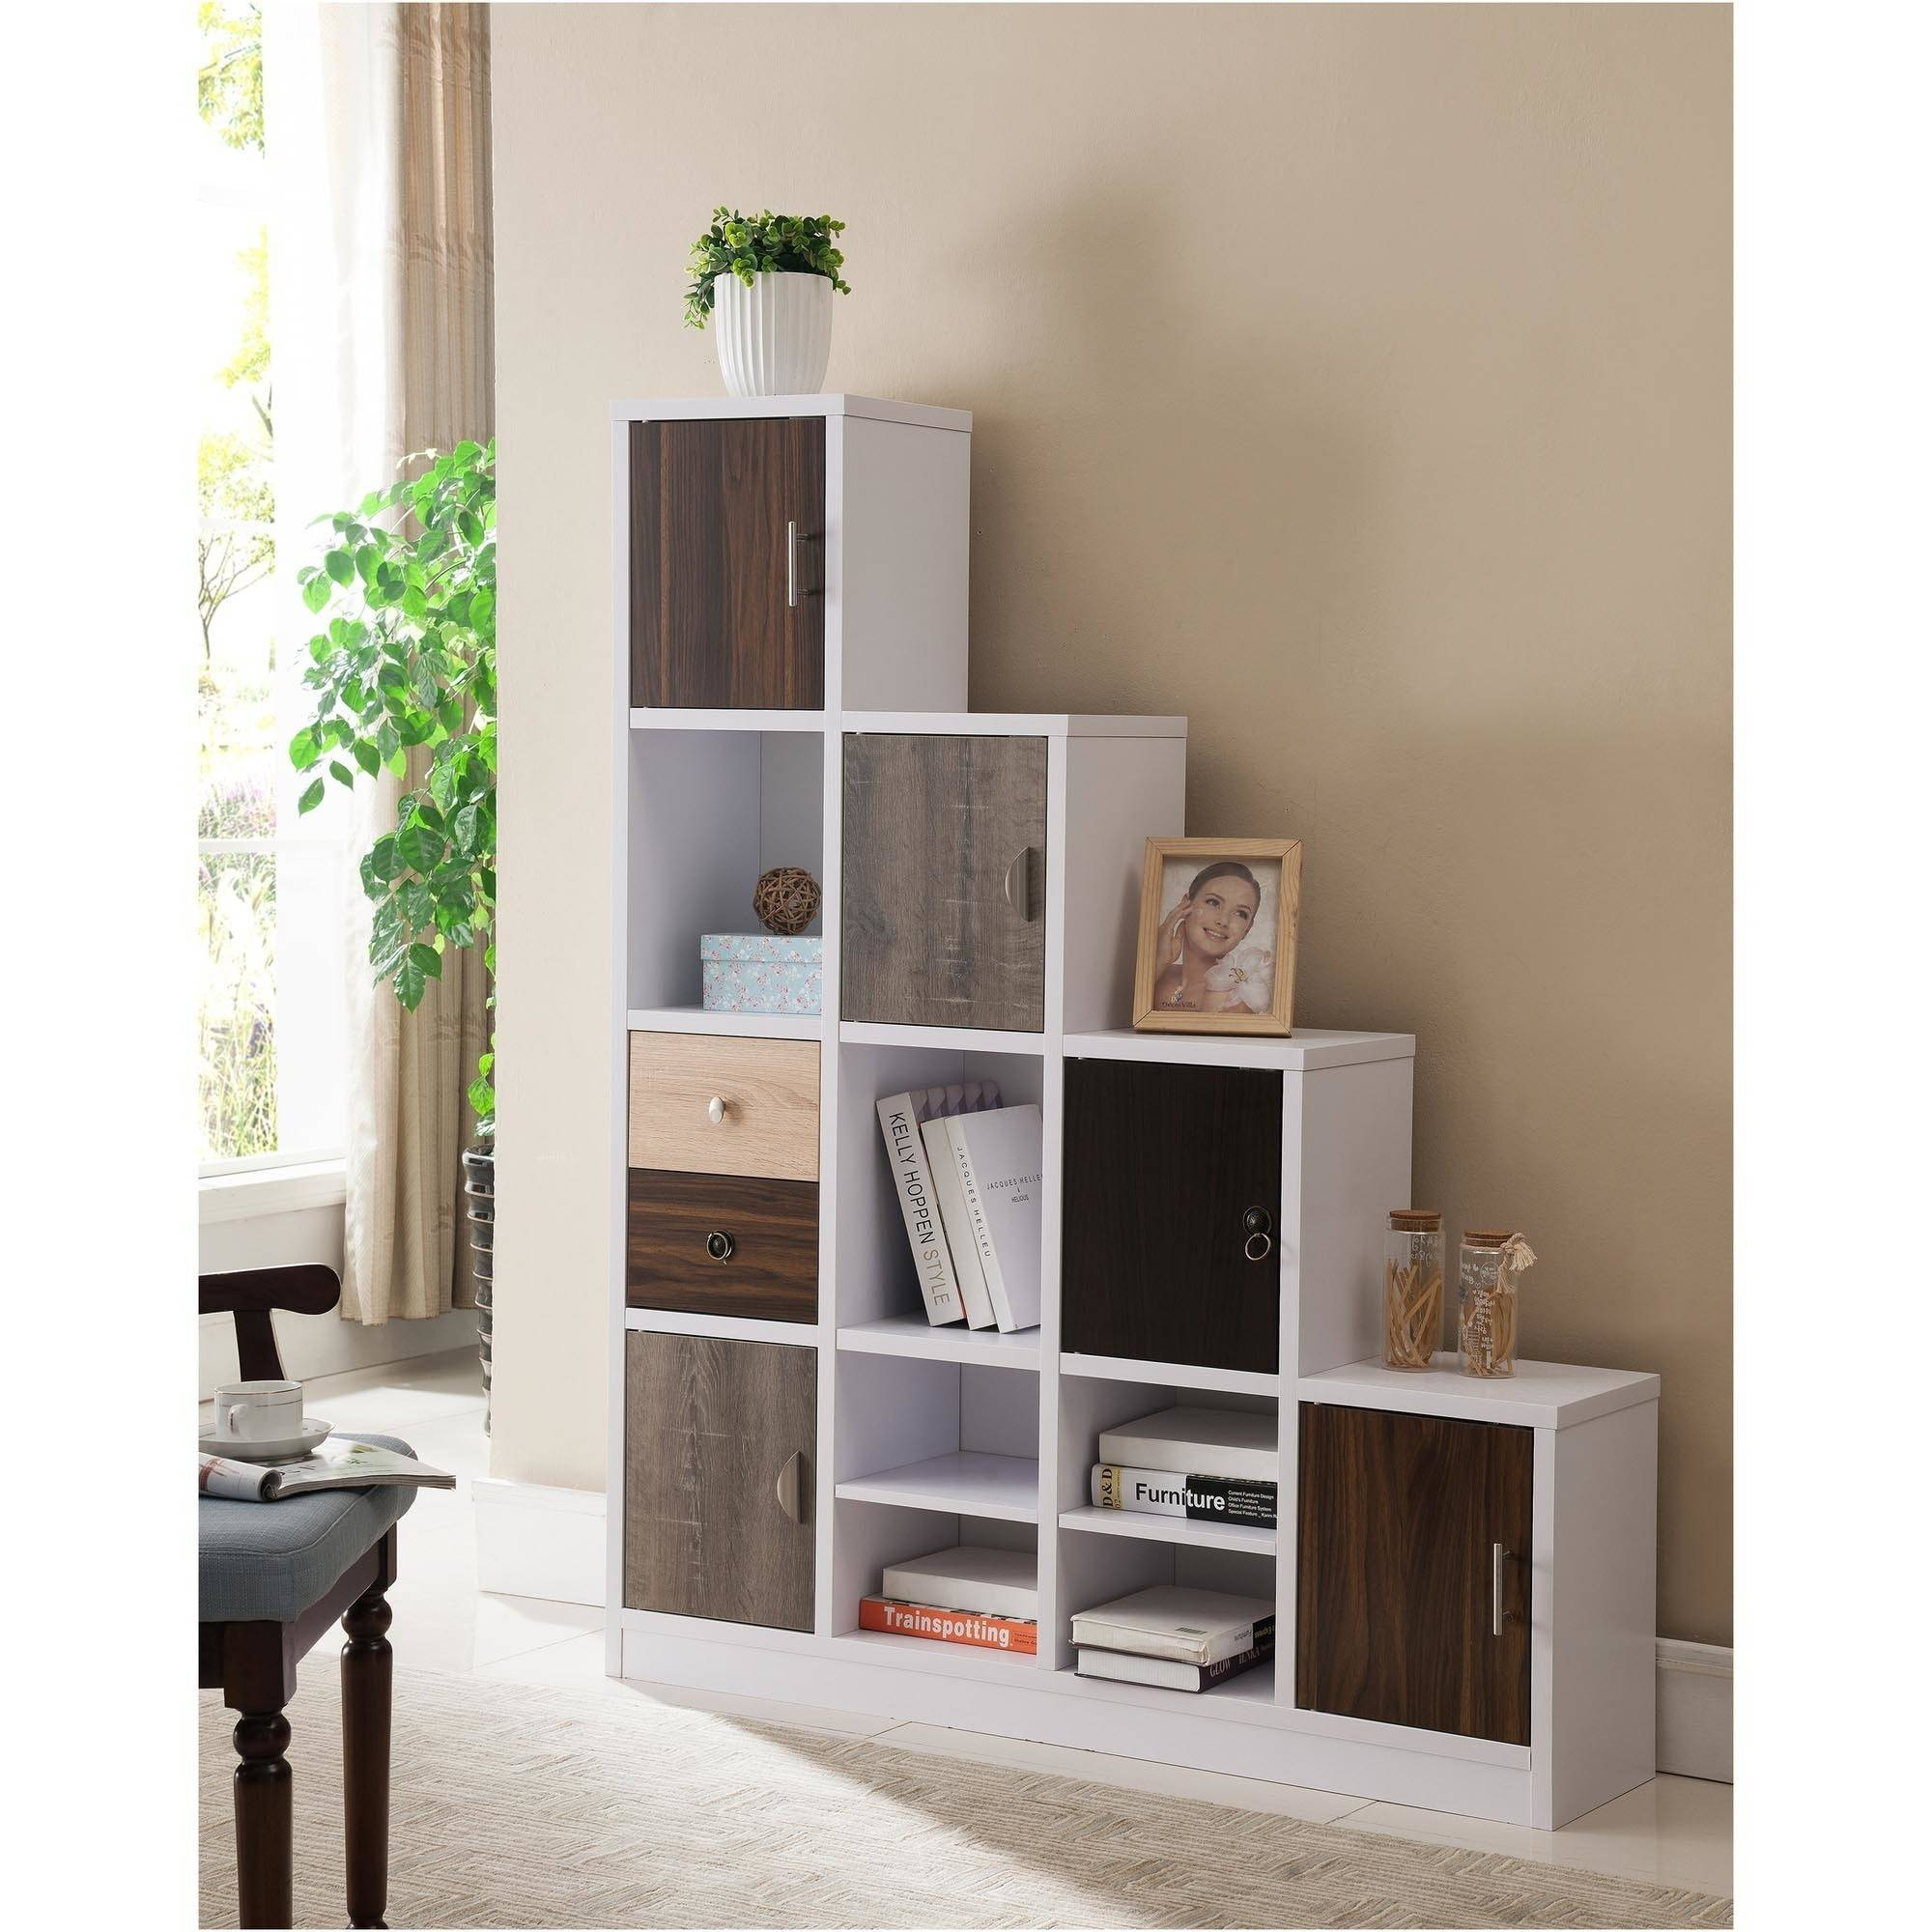 Furniture of America Stilla Boxed Shelf Display Case, White